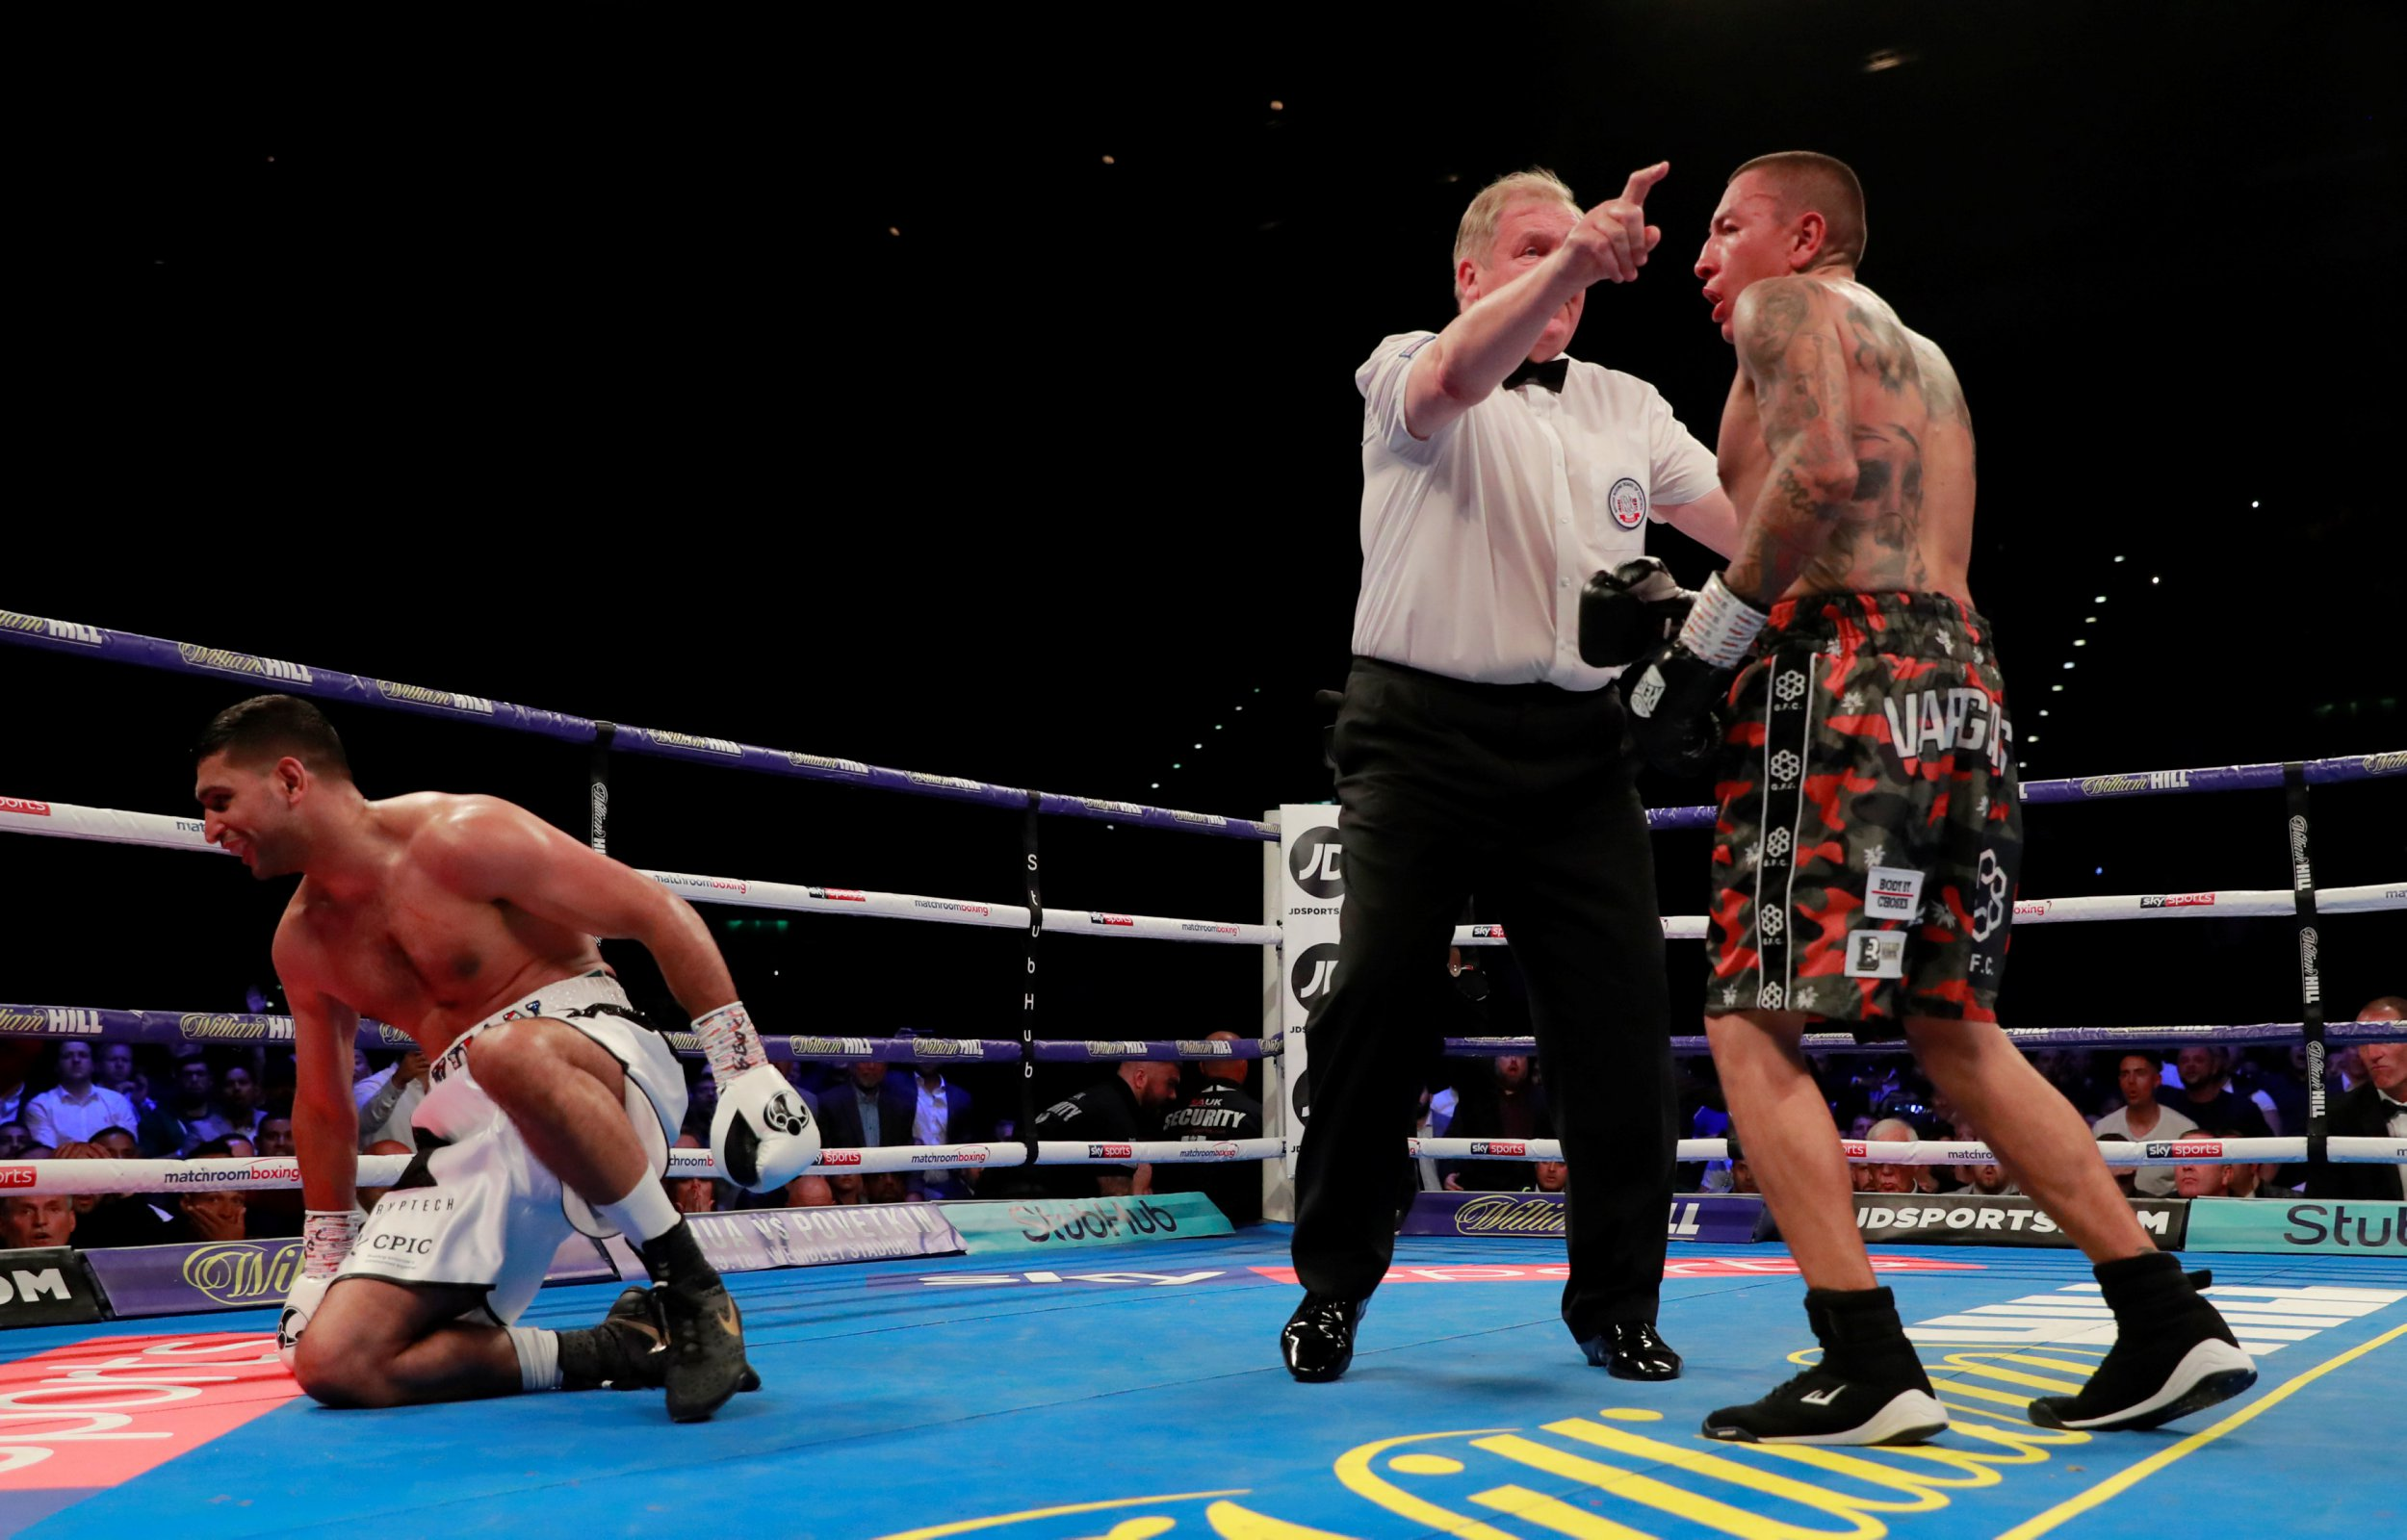 Amir Khan floored on way to points victory over Samuel Vargas